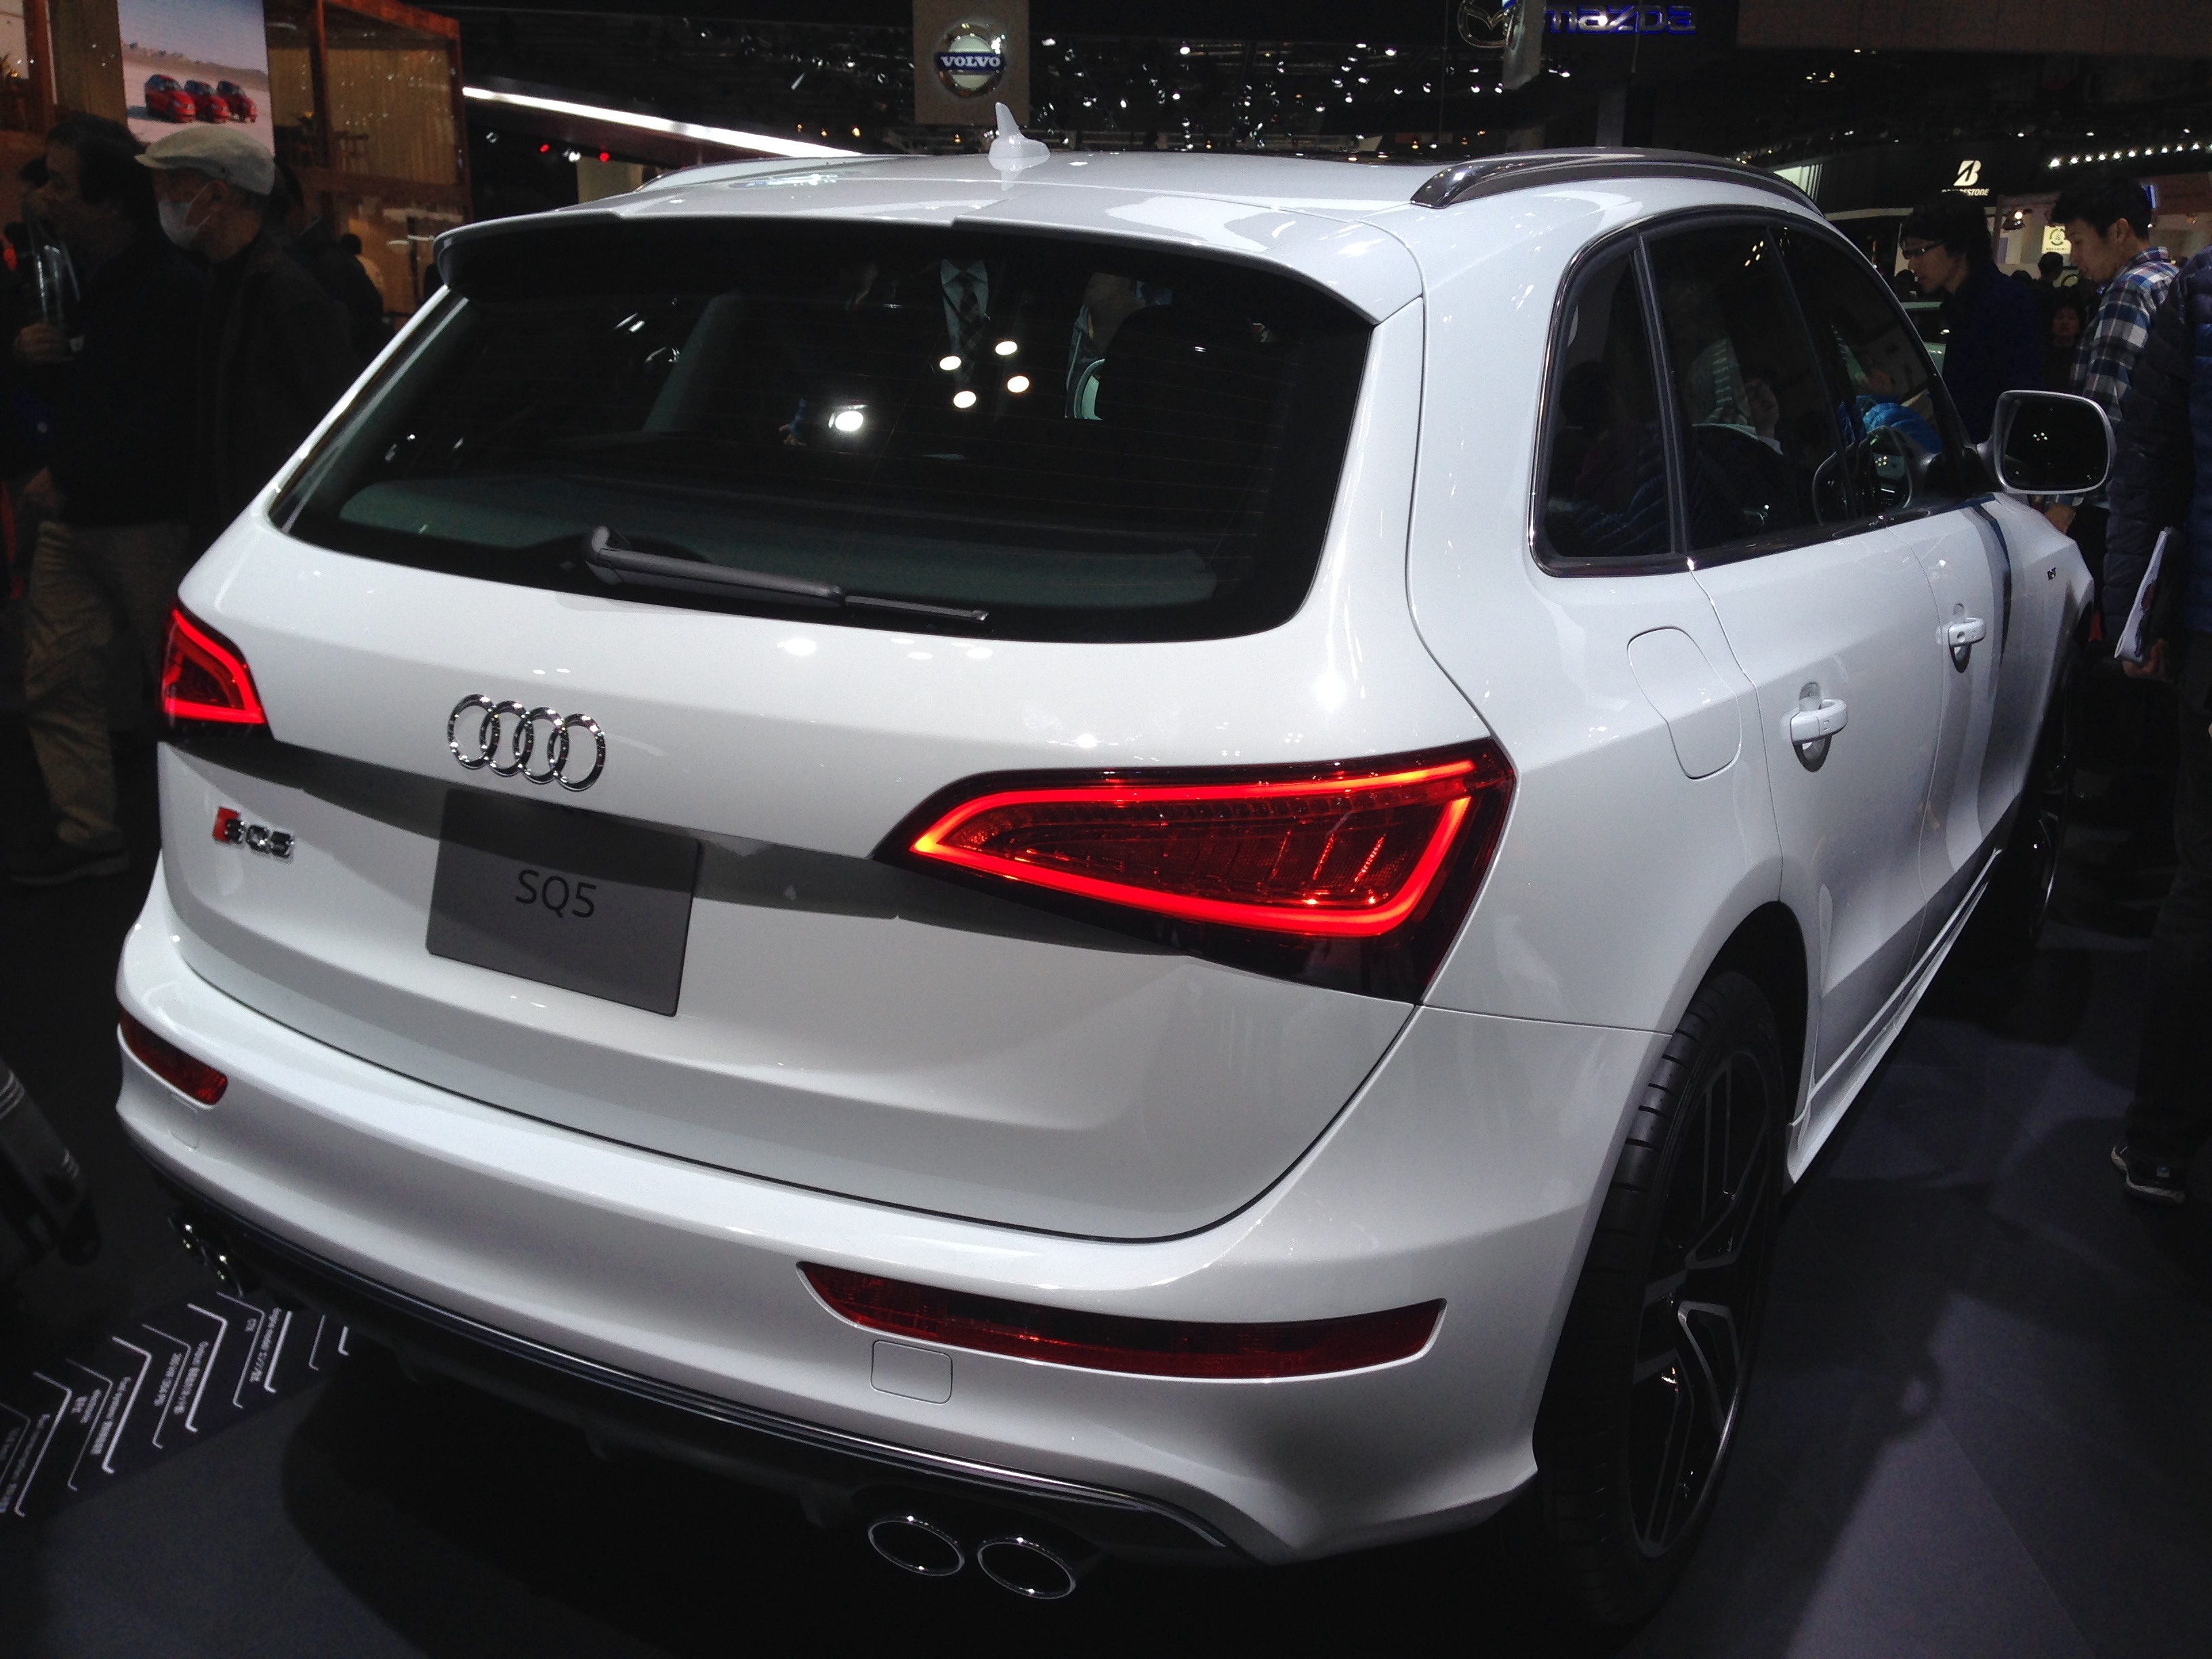 file audi sq5 3 0 tfsi rear tokyo motor show wikimedia commons. Black Bedroom Furniture Sets. Home Design Ideas